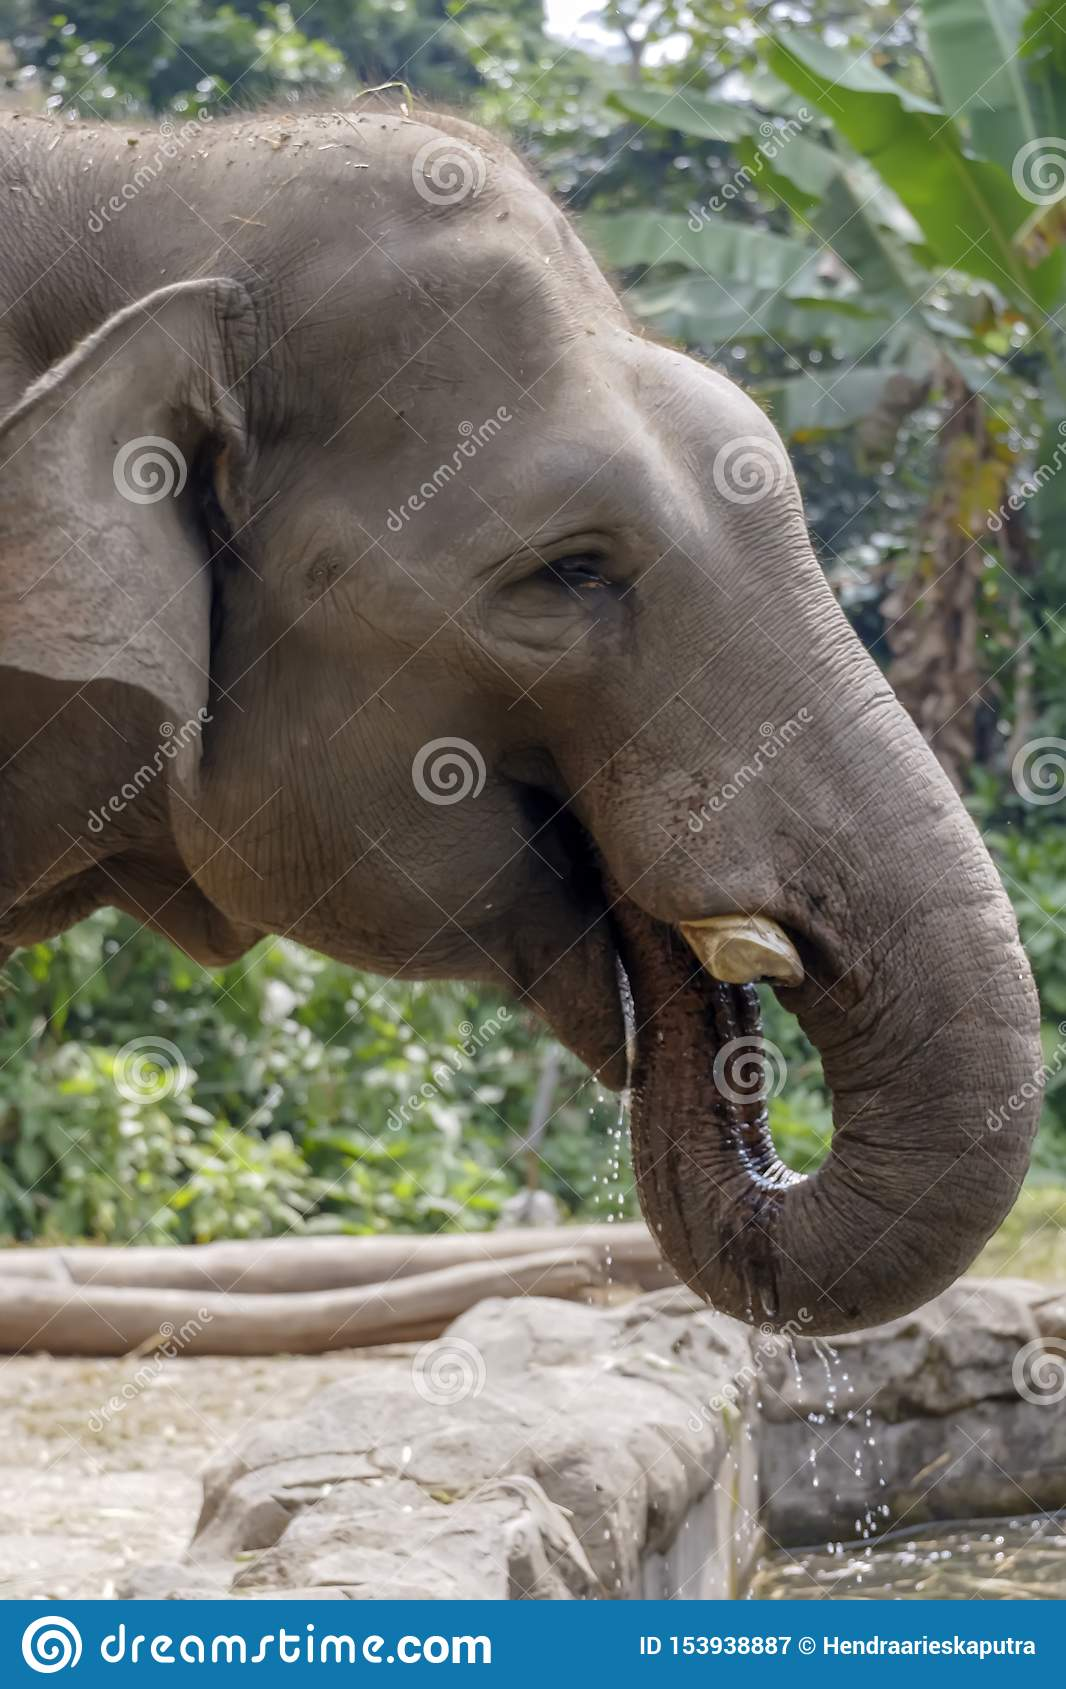 AN ELEPHANT DRINKING WATER WITH TRUNK